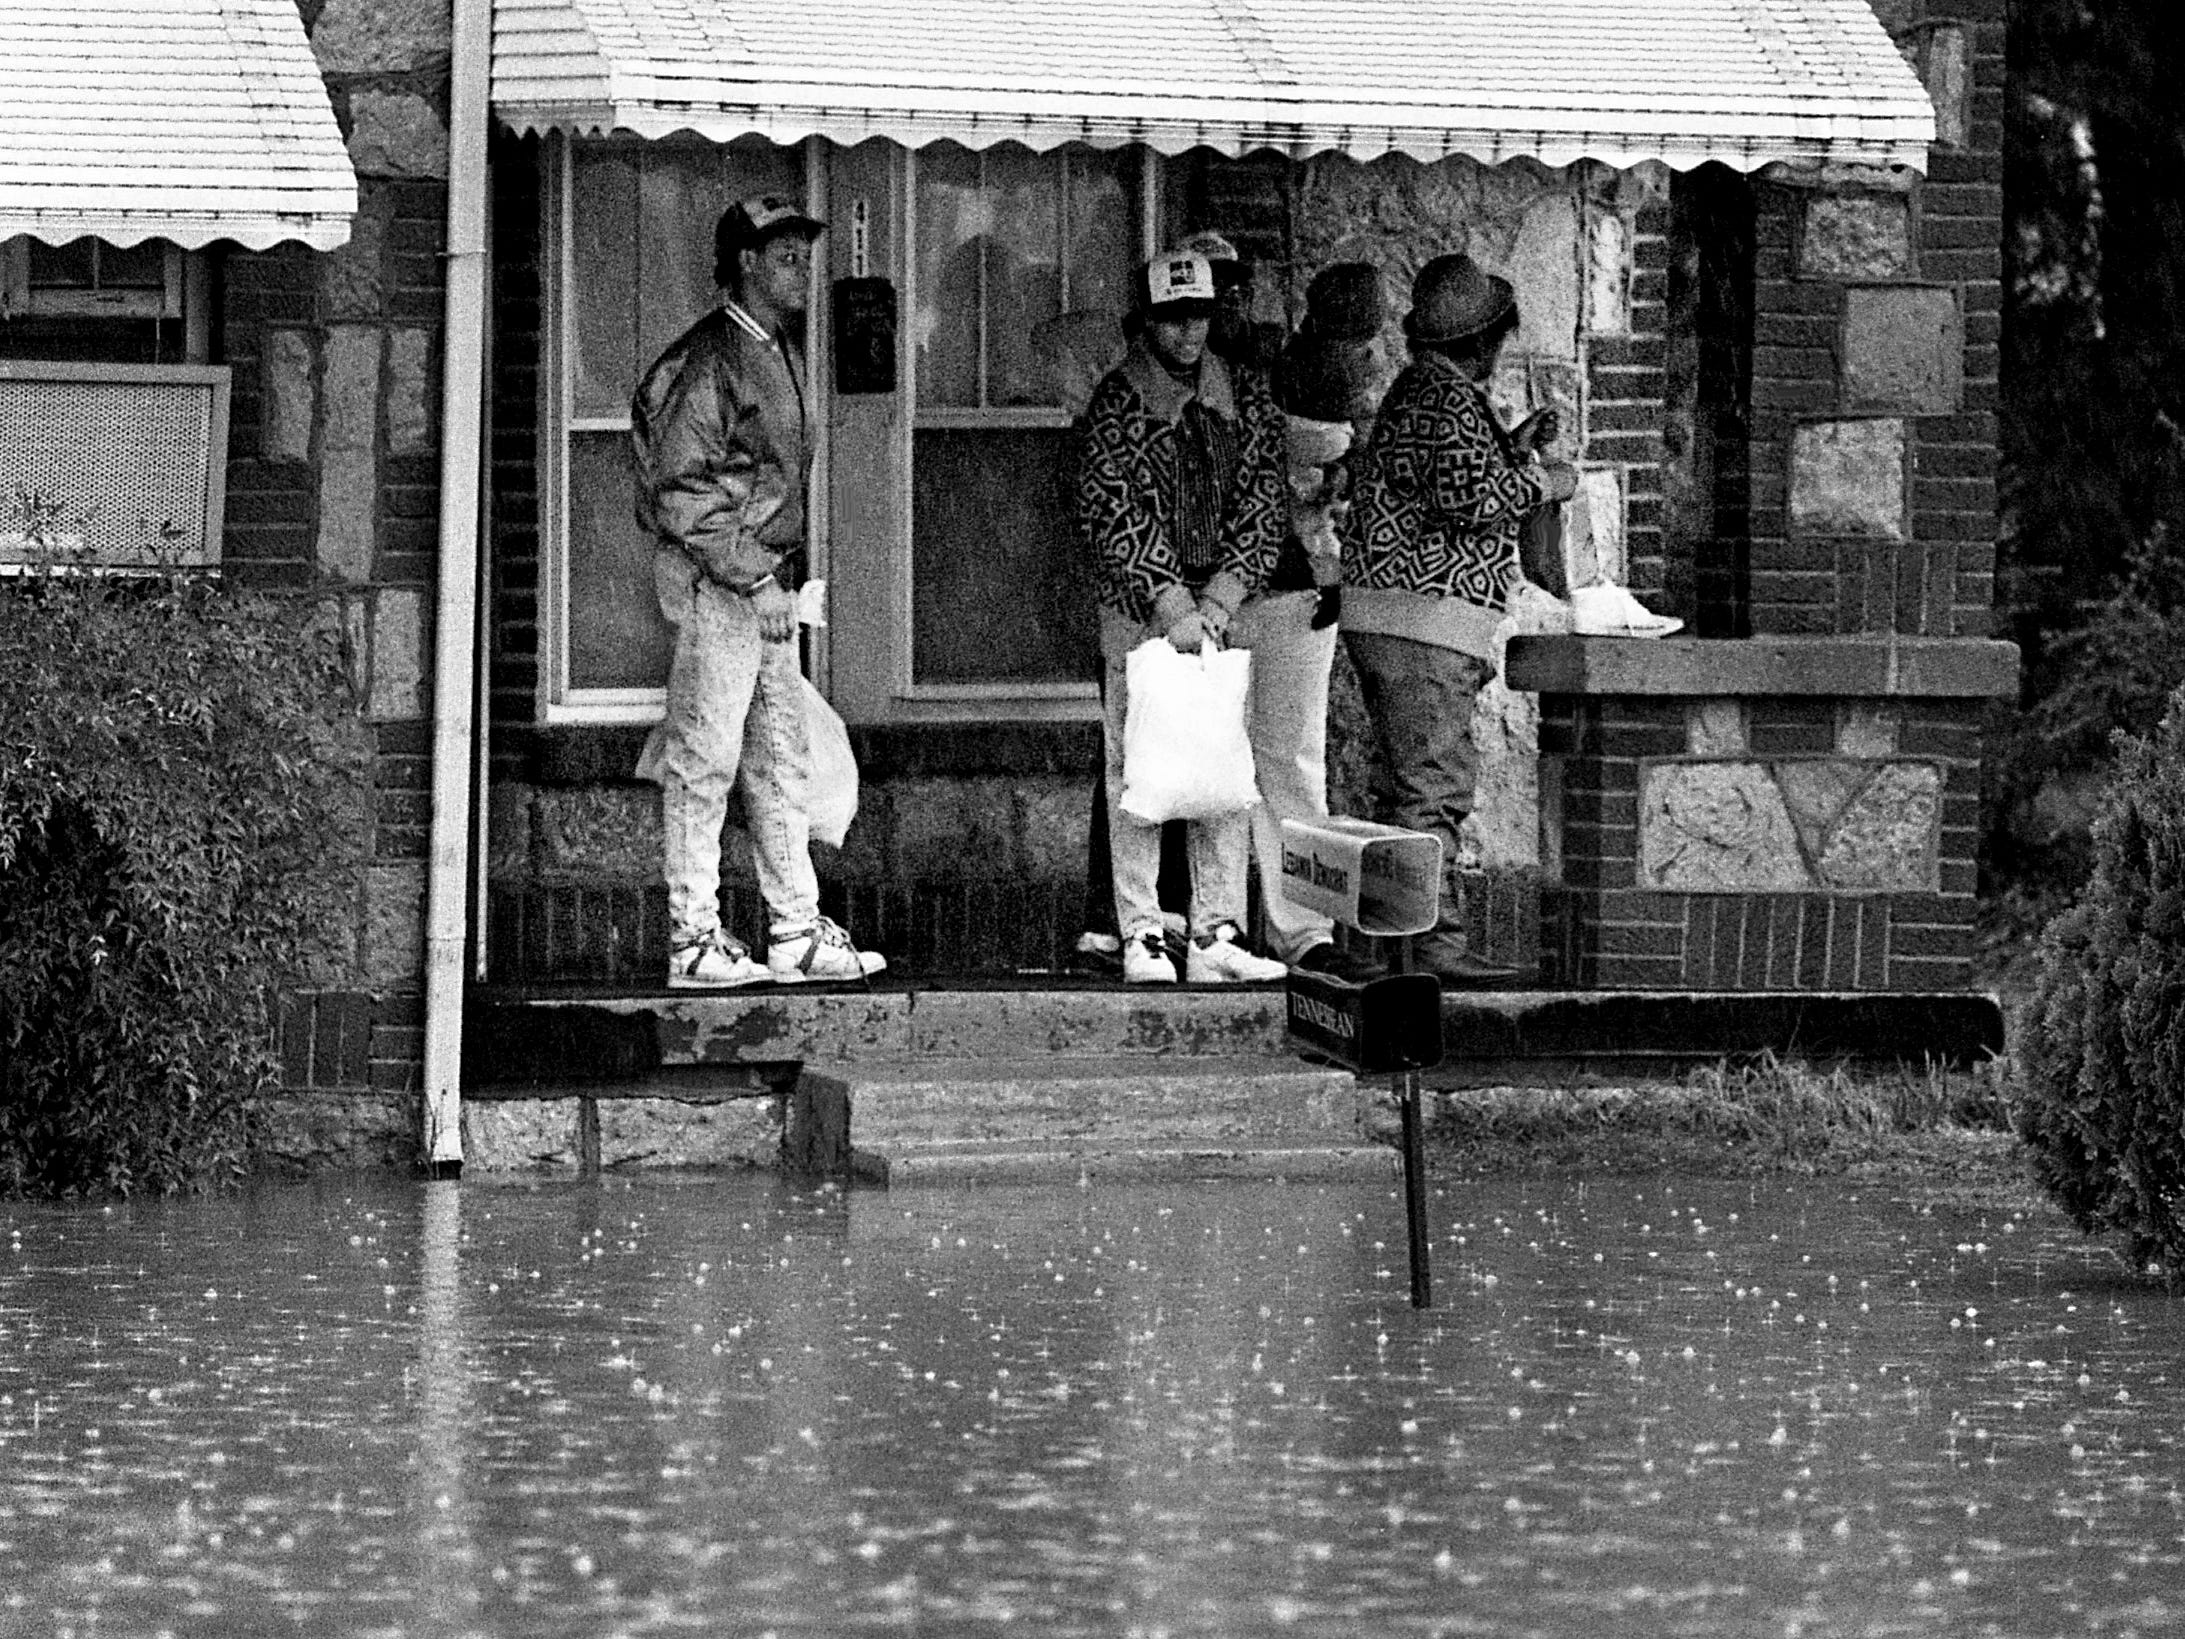 The family of Roy Nunley prepares to evacuate their home on East Spring Street on Feb. 14, 1989, after a storm dumped nearly 6 inches of rain on Wilson County.